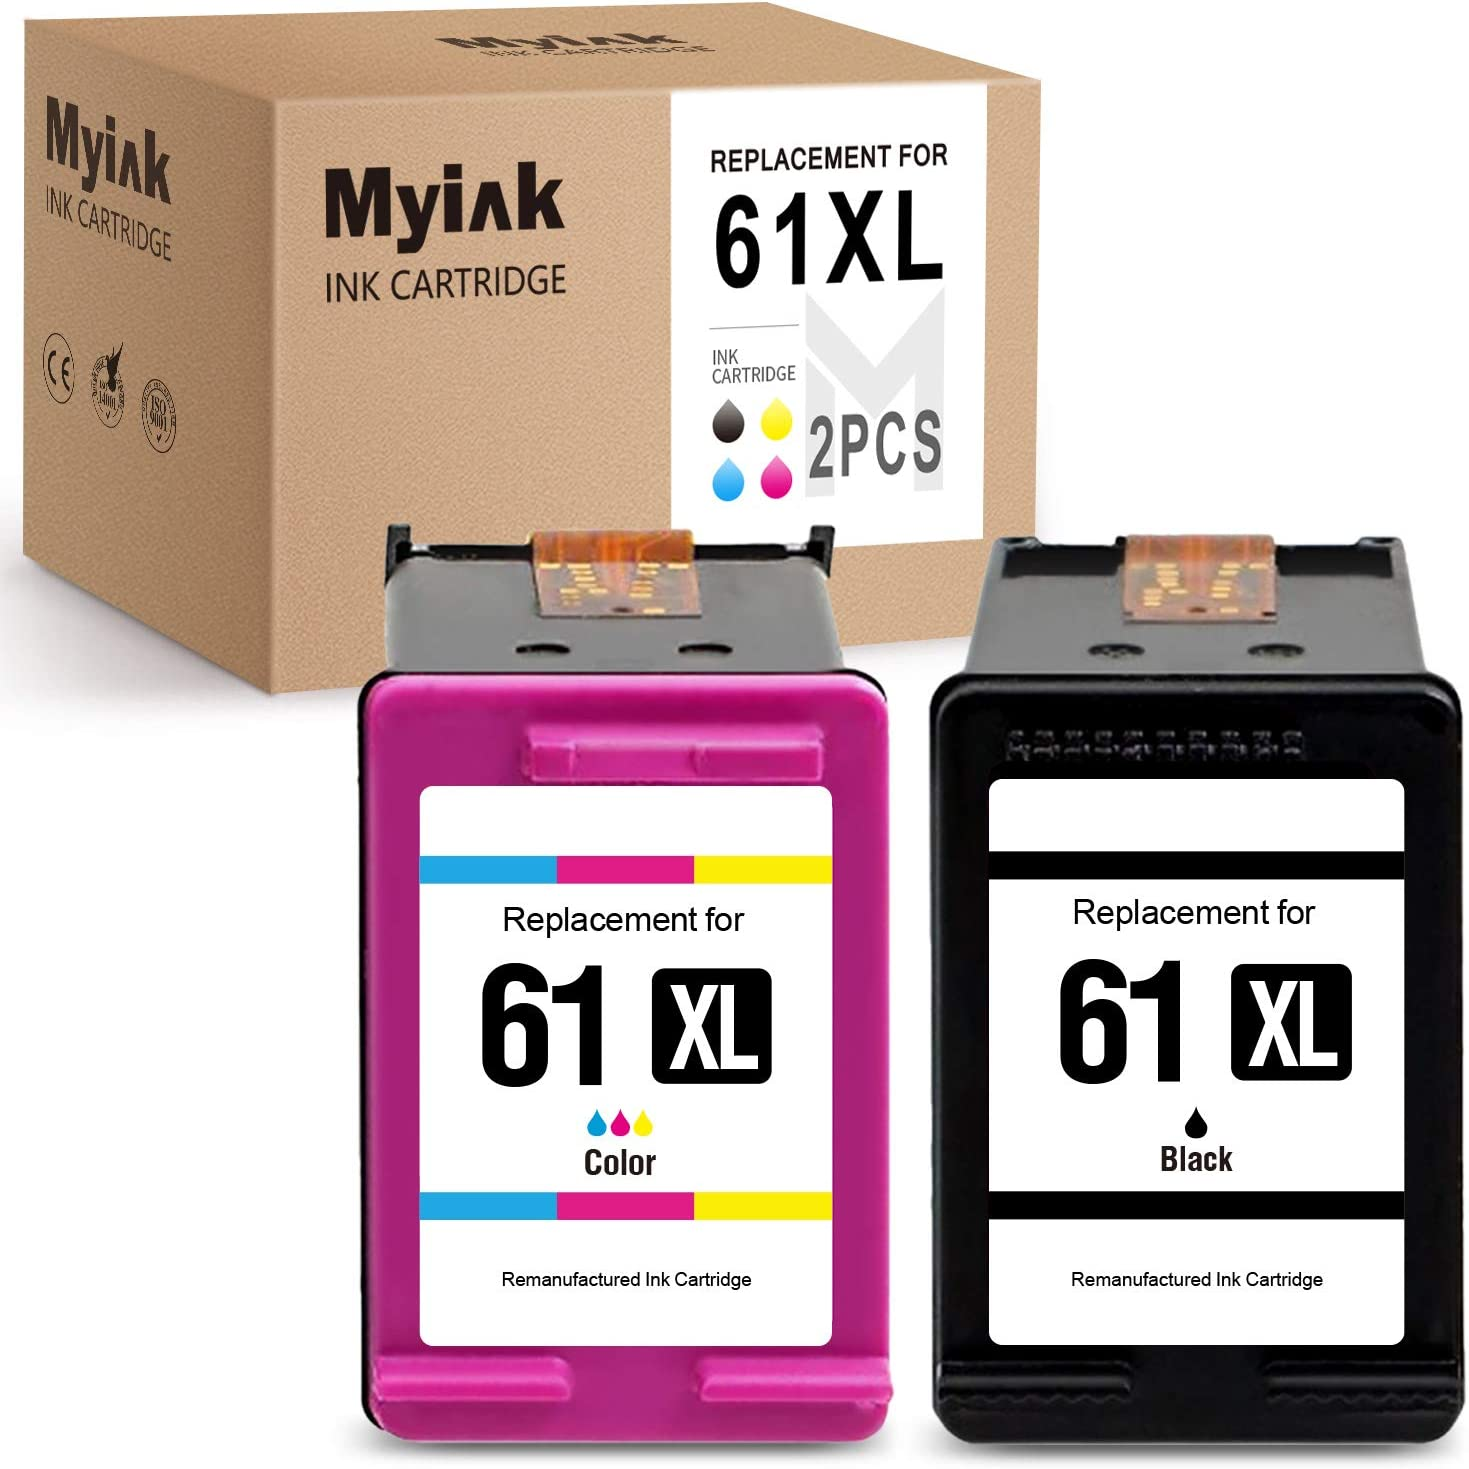 MYINK Remanufactured Ink Cartridge Replacement for HP 61 XL 61XL 1 Black 1 Color, 2 Pack